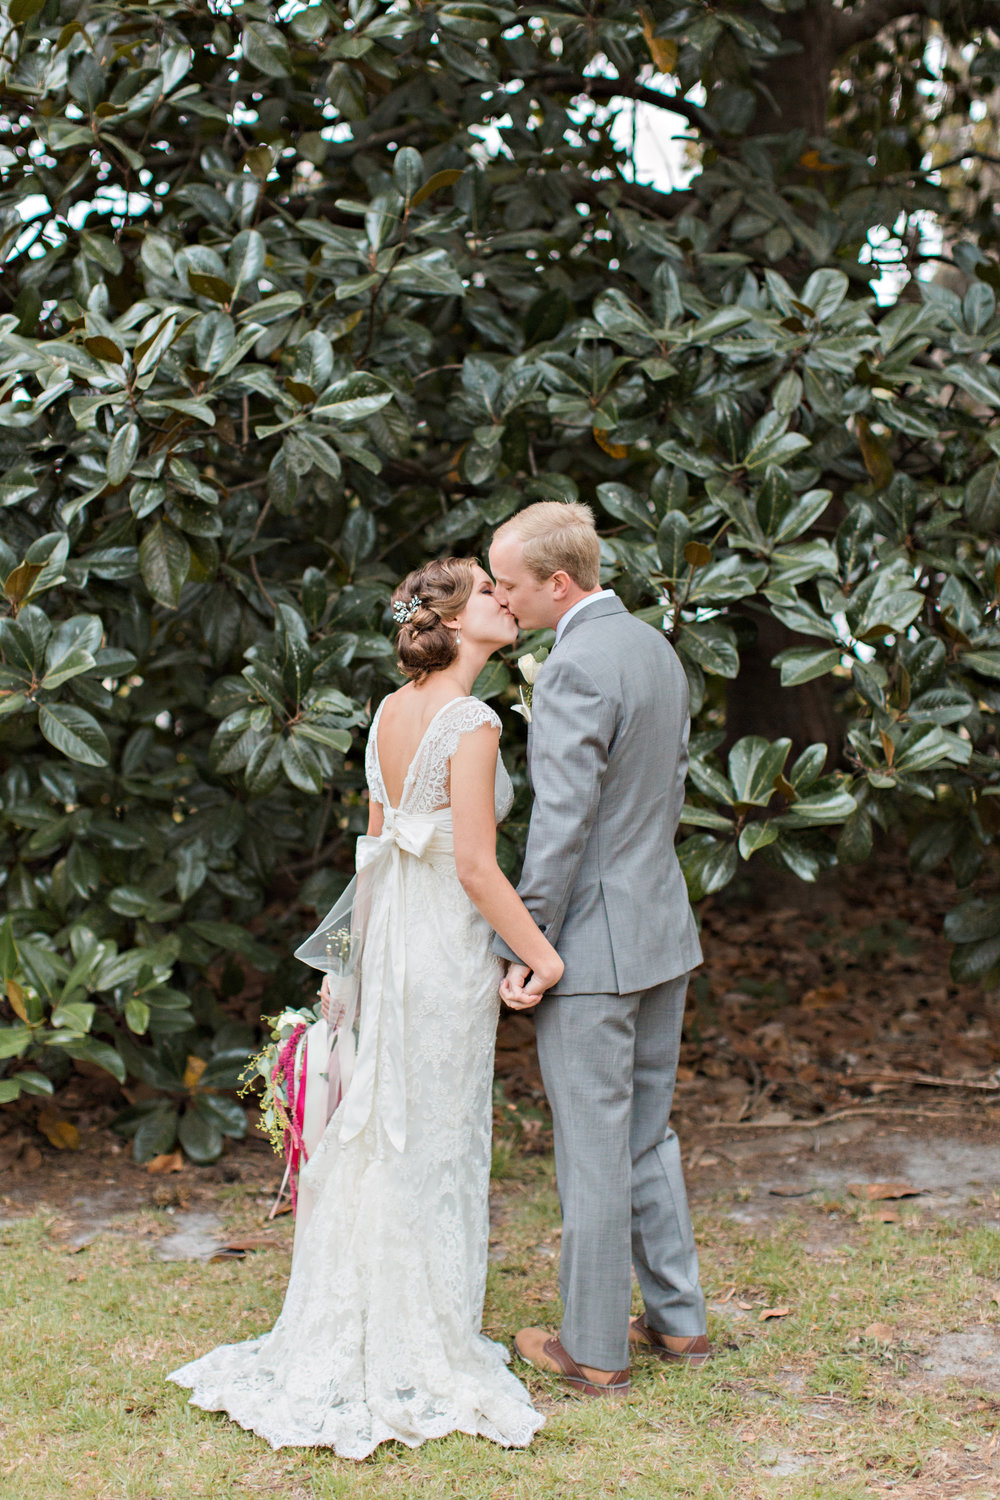 kayla-cody-katie-mcgee-photography-ivory-and-beau-bridal-boutique-anna-campbell-thalia-lace-mermaid-anna-campbell-bridal-savannah-bridal-boutique-savannah-wedding-savannah-weddings-13.jpg